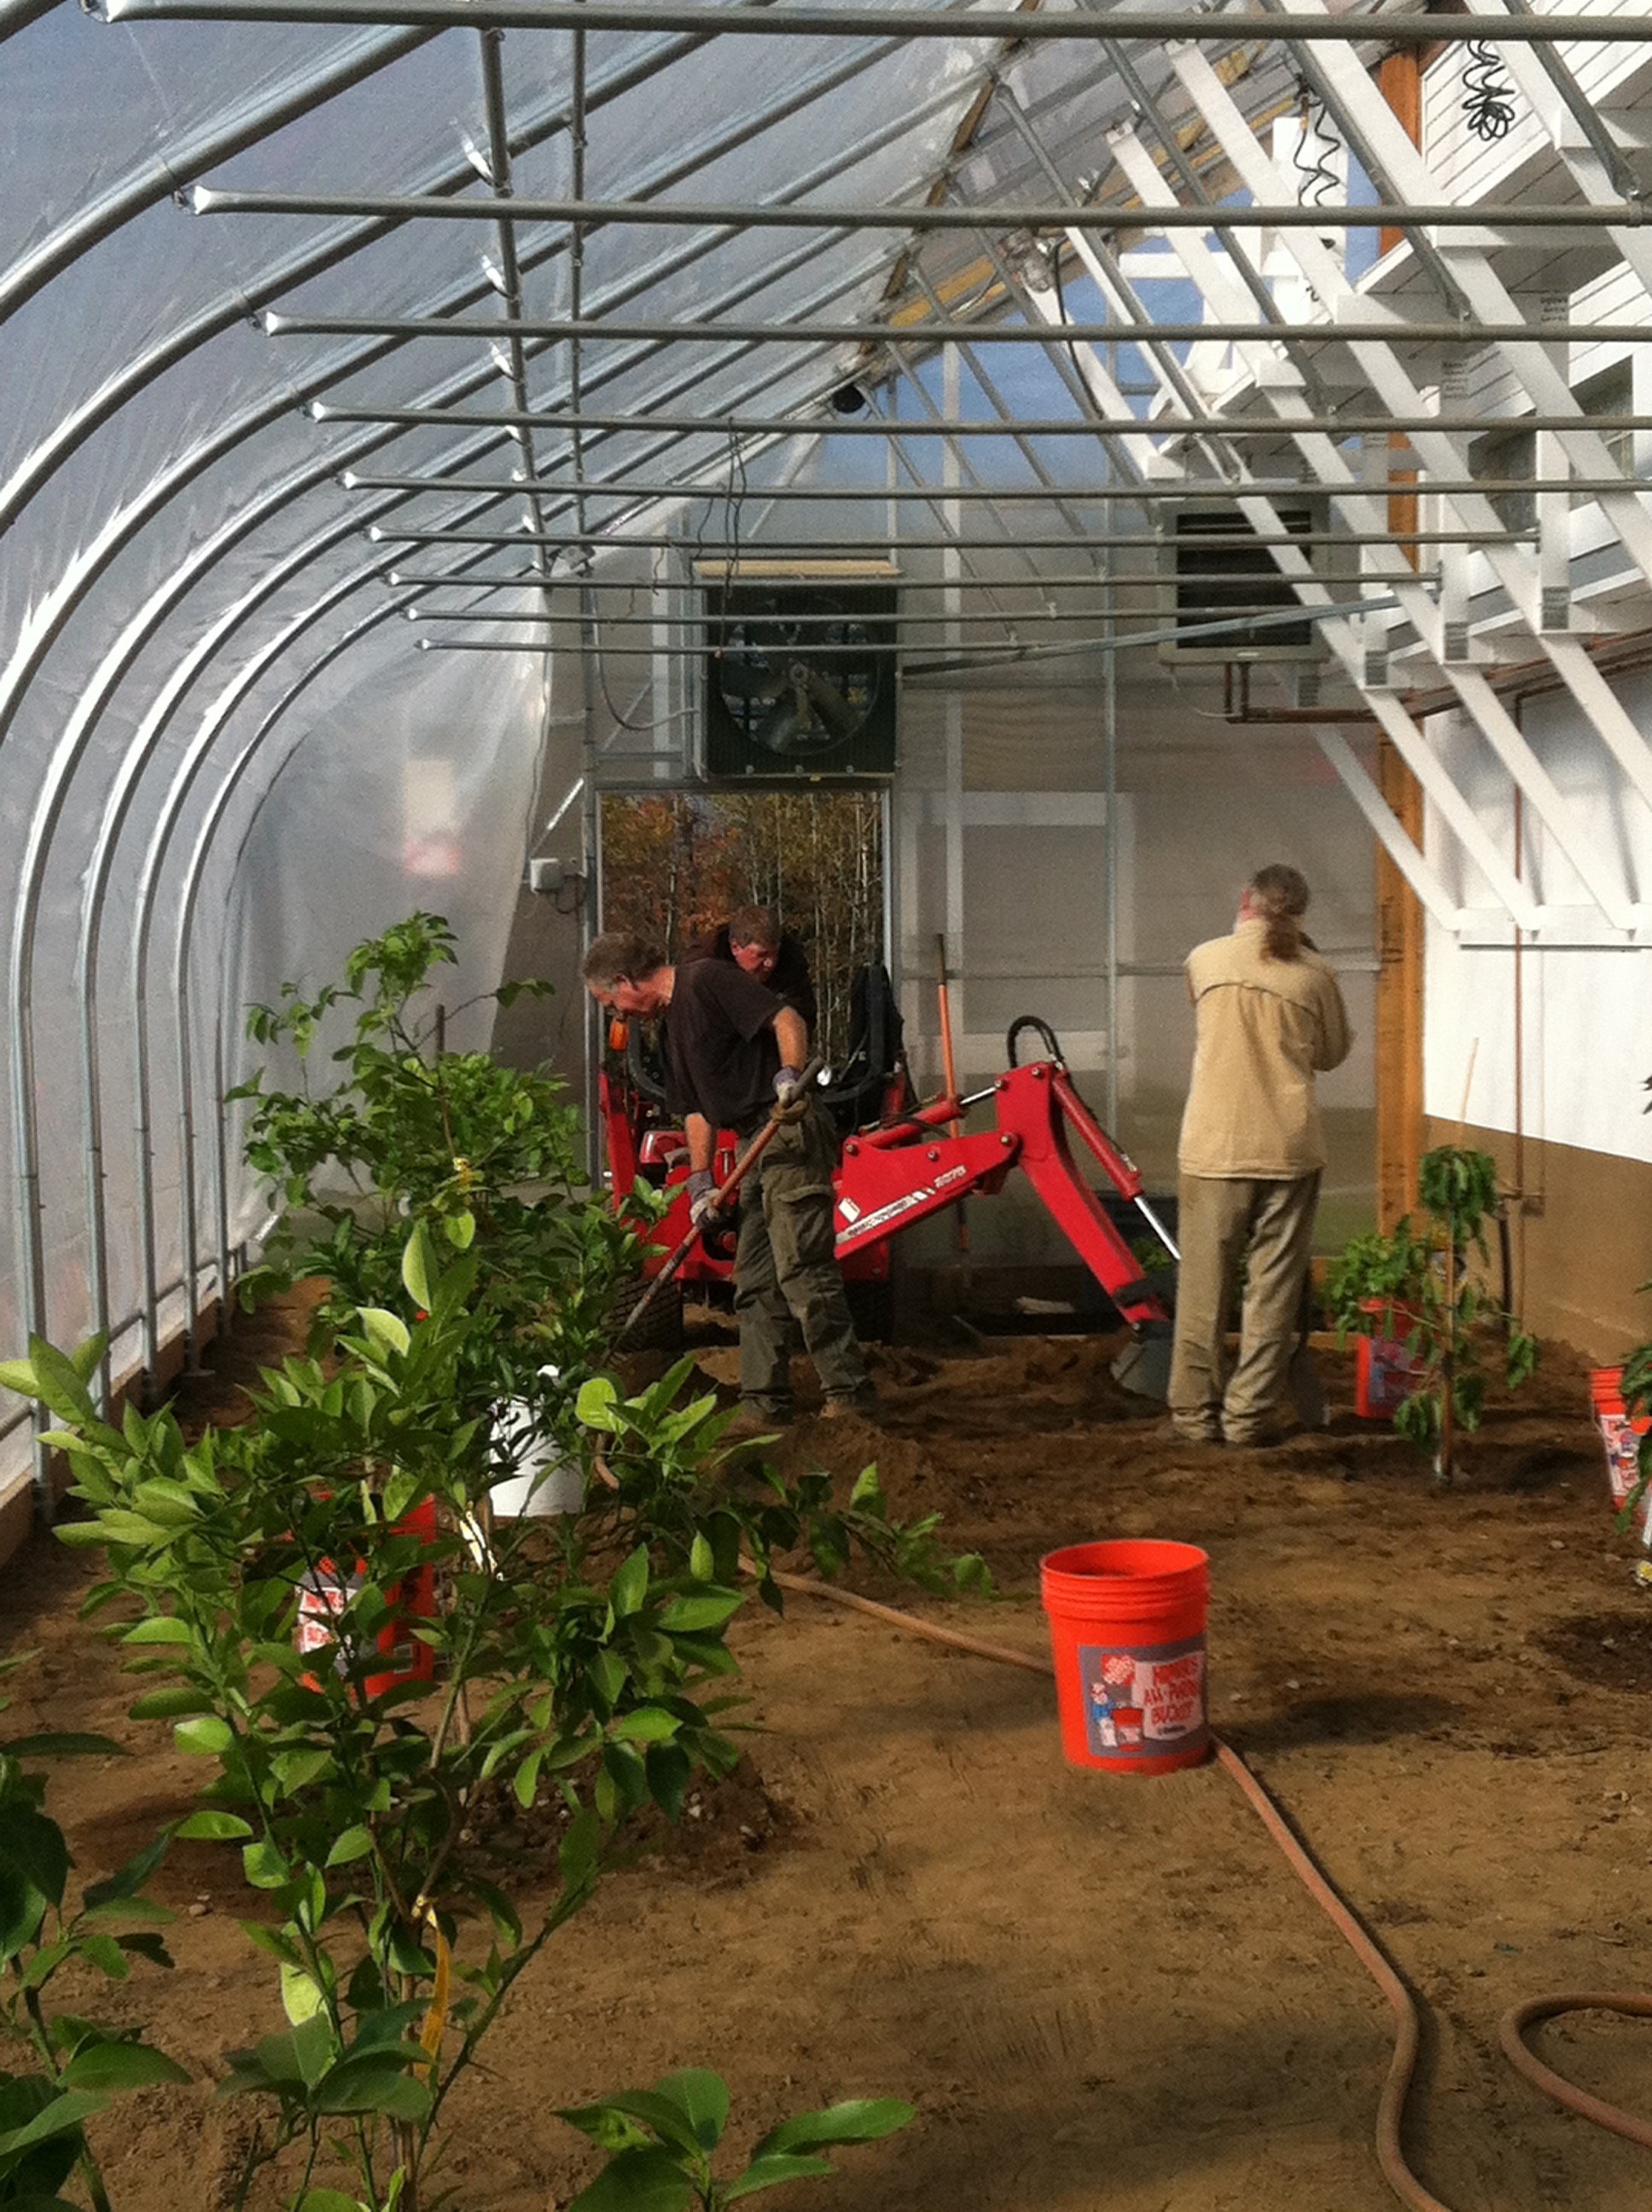 Planting citrus and avocado trees in greenhouse, October 2013. Ron was a master with equipment.